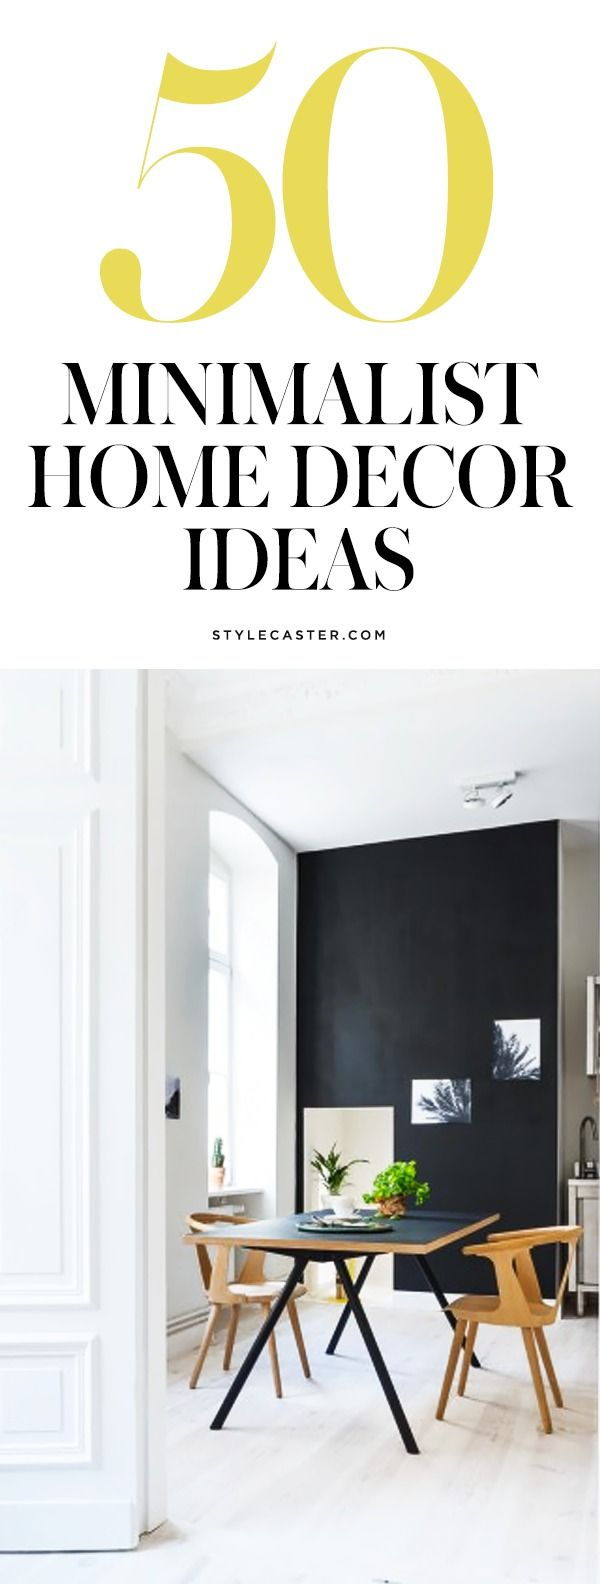 50 Gorgeous Home Decor Ideas For Minimalists